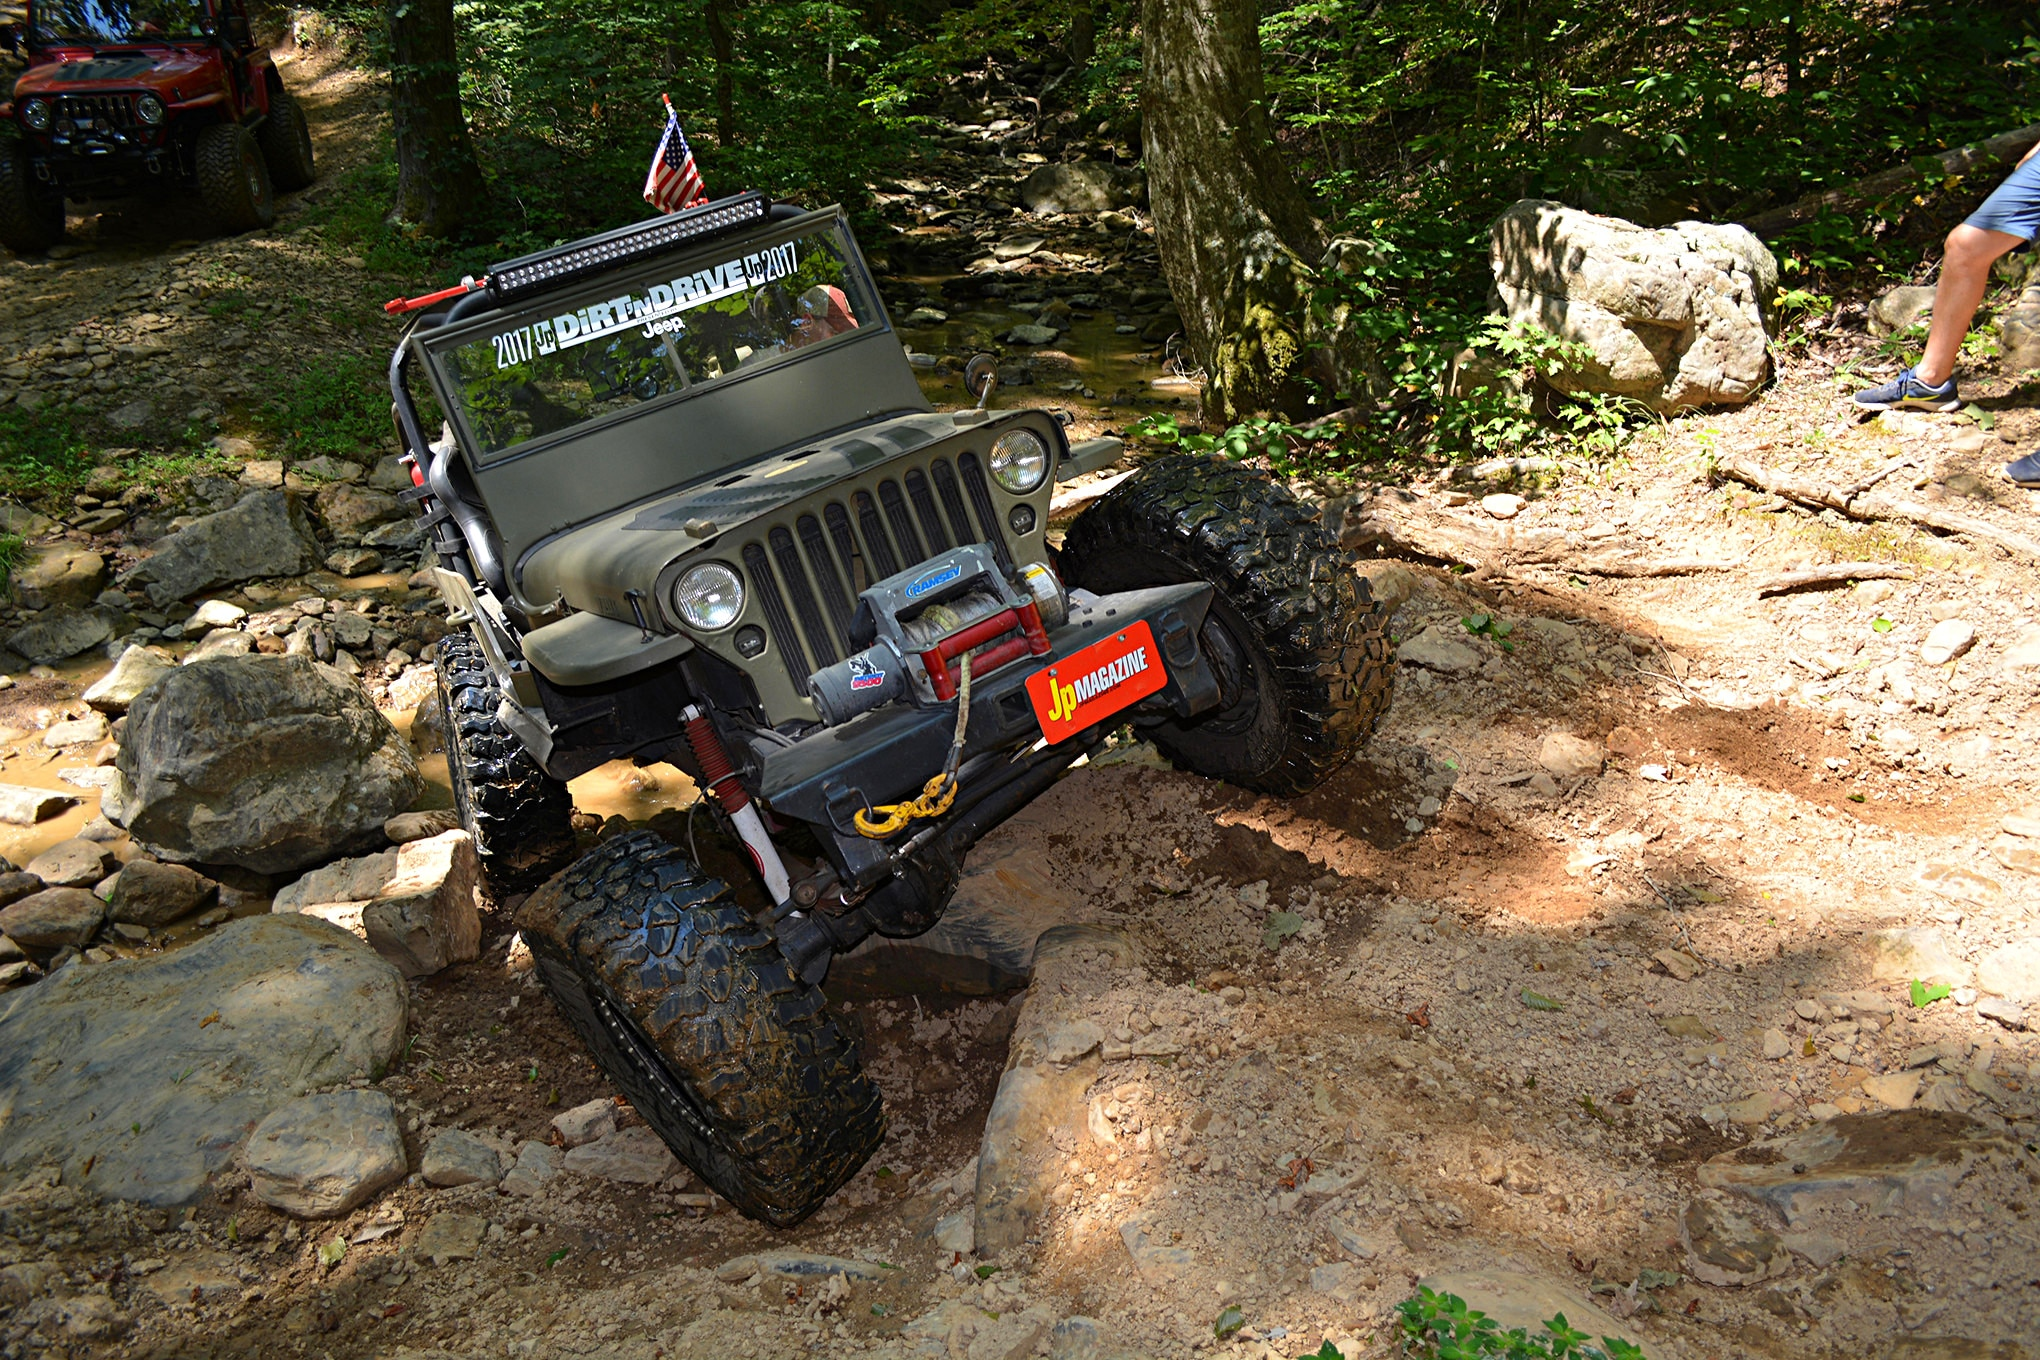 This creek crossing is deceiving when you are on the approach. The rocks are a bit slick upon entry and can throw you off the line quickly, making the departure to the hard-right turn almost impossible. Carson Qualls in his Willys CJ-2A navigated it rather smartly.